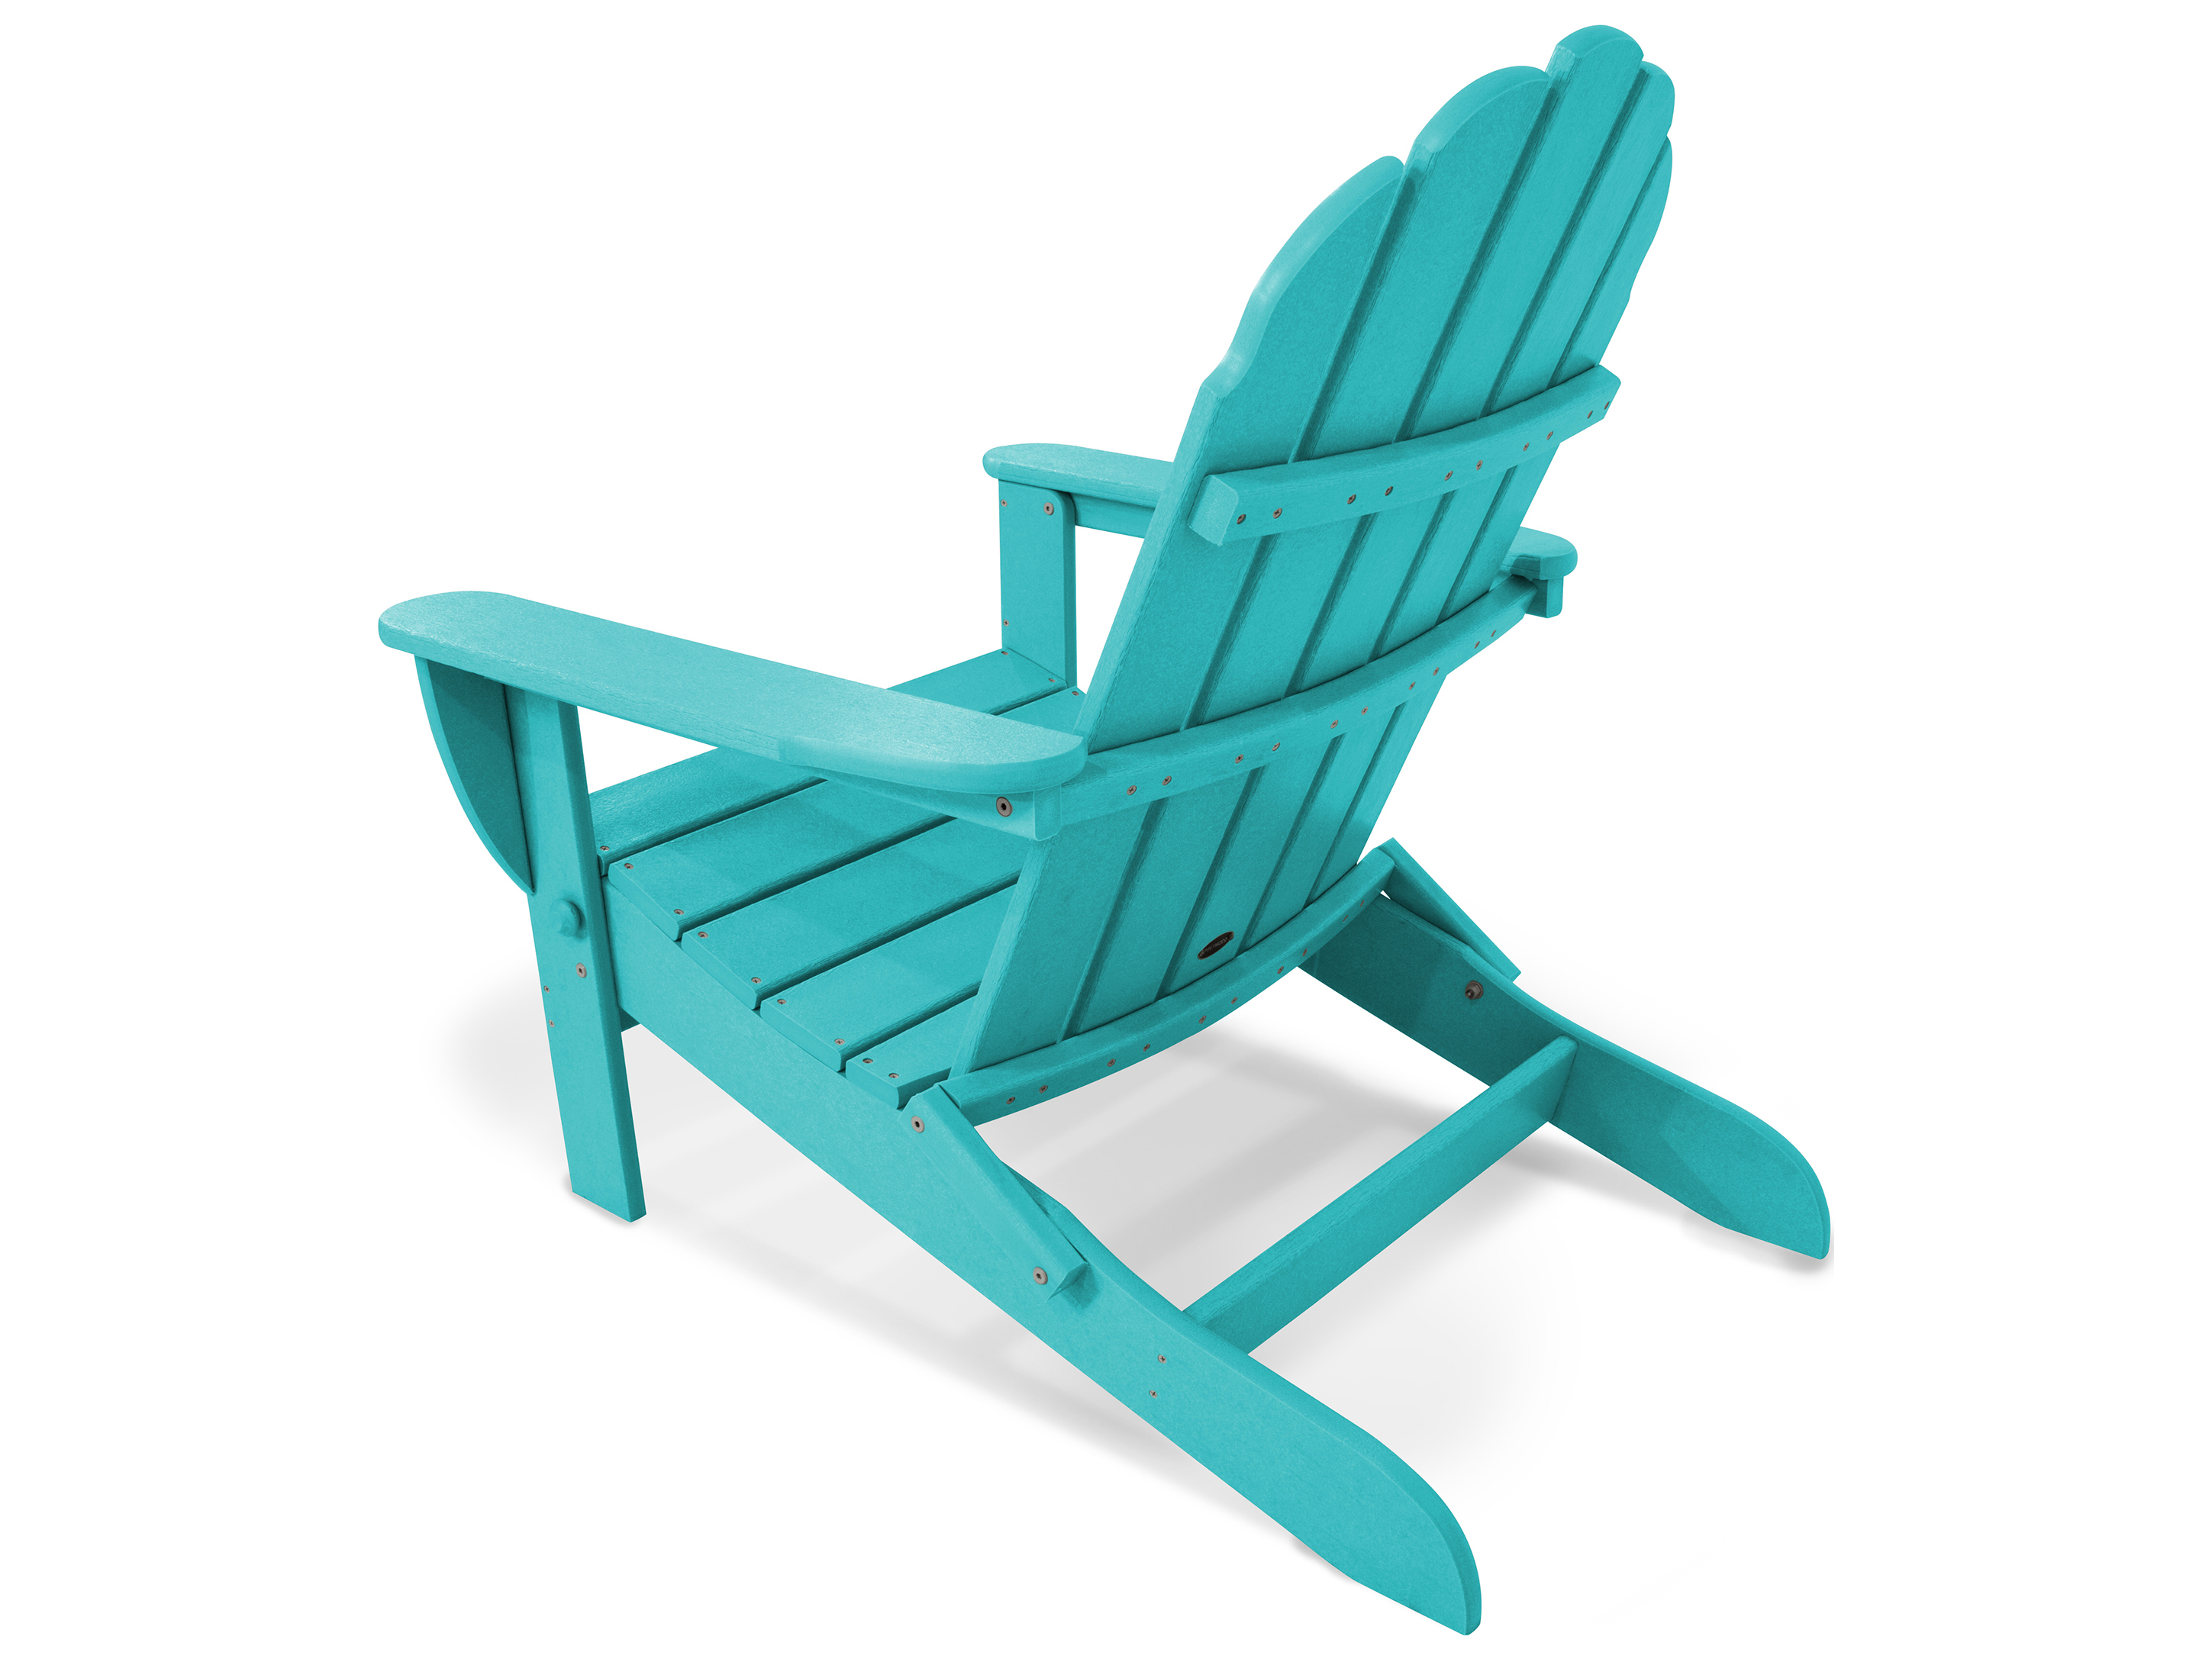 Adirondack Chair Plastic Polywood Classic Adirondack Recycled Plastic Chair Ad7030